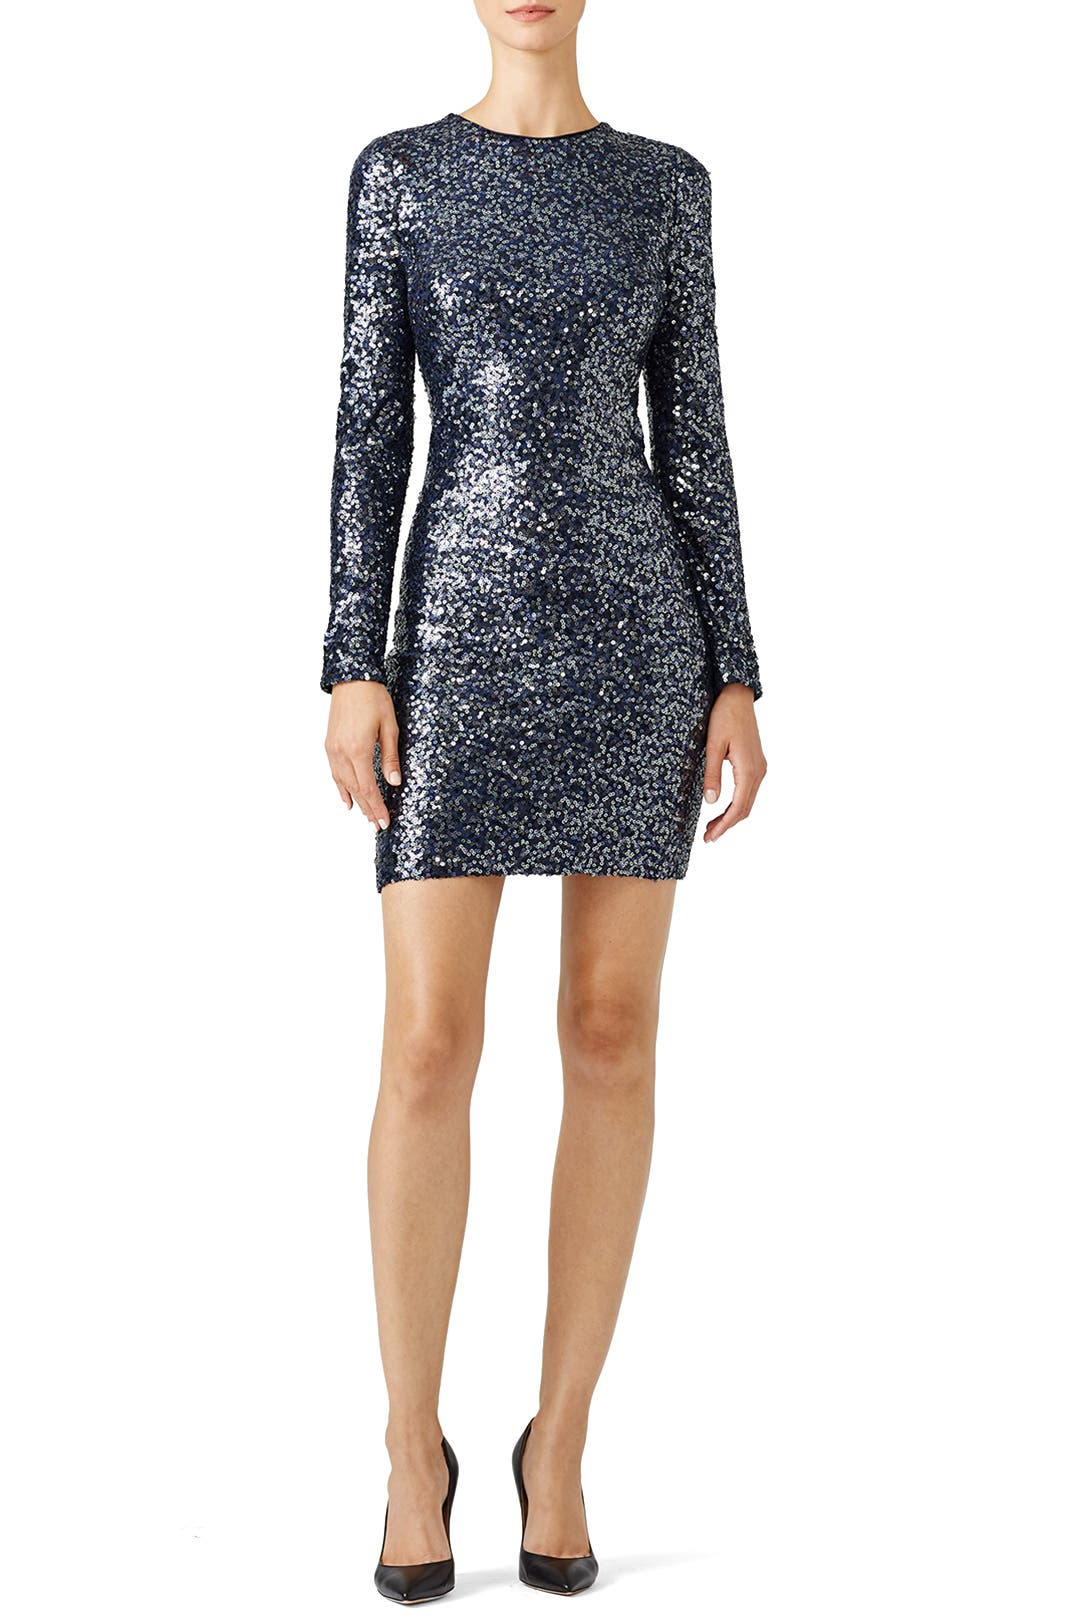 sequin disco dress by badgley mischka for 75 90 rent the runway. Black Bedroom Furniture Sets. Home Design Ideas